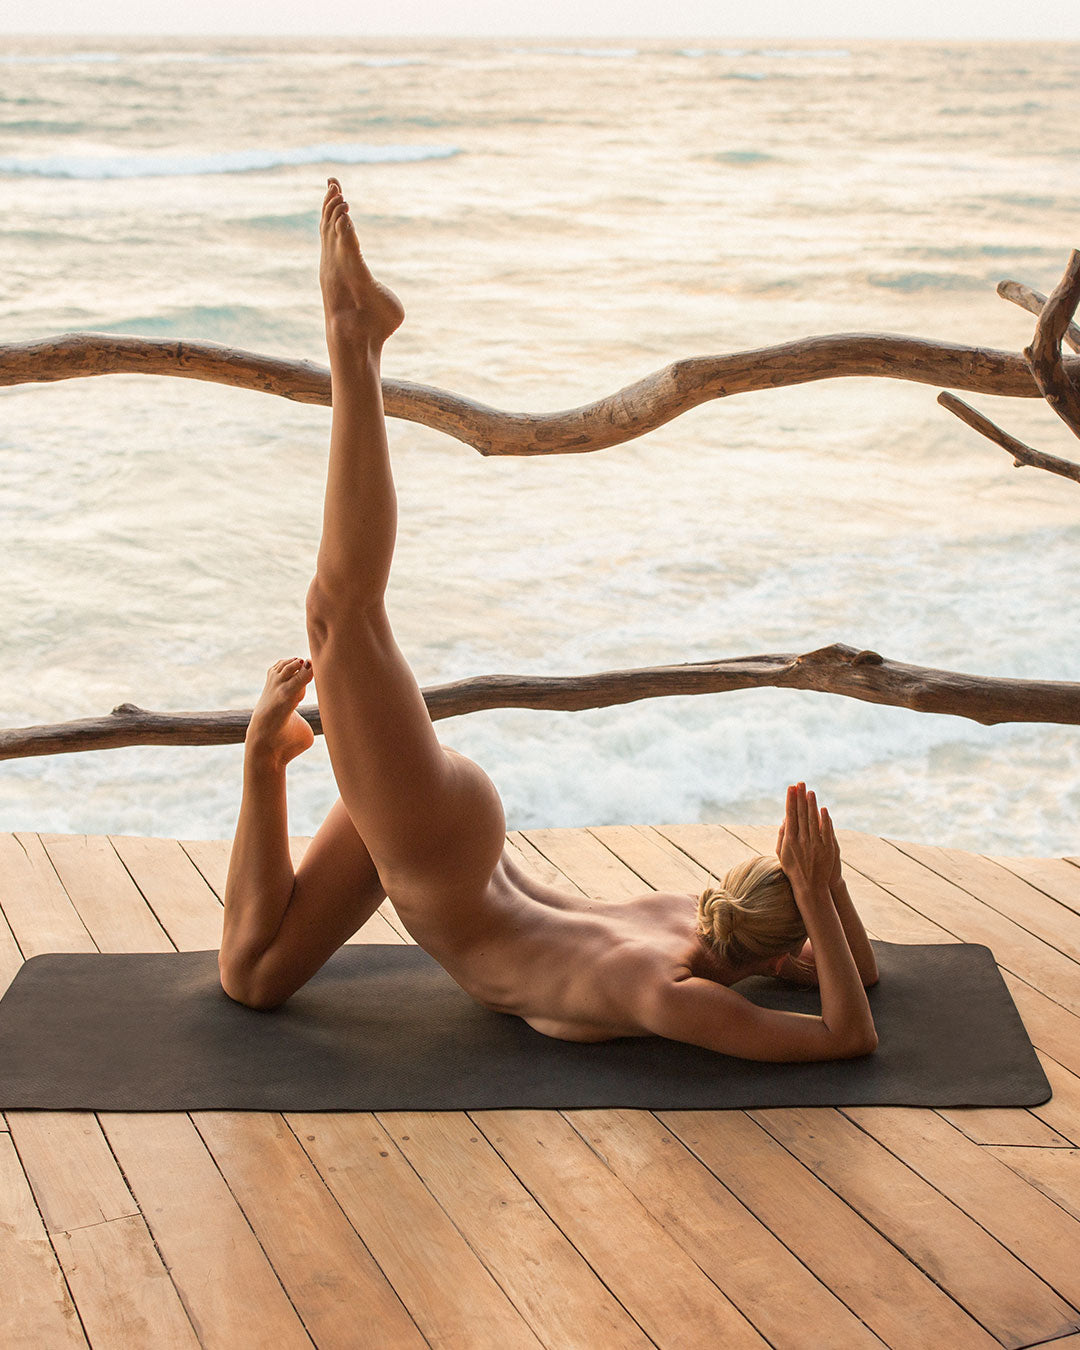 Yoga photography in Tulum, Mexico